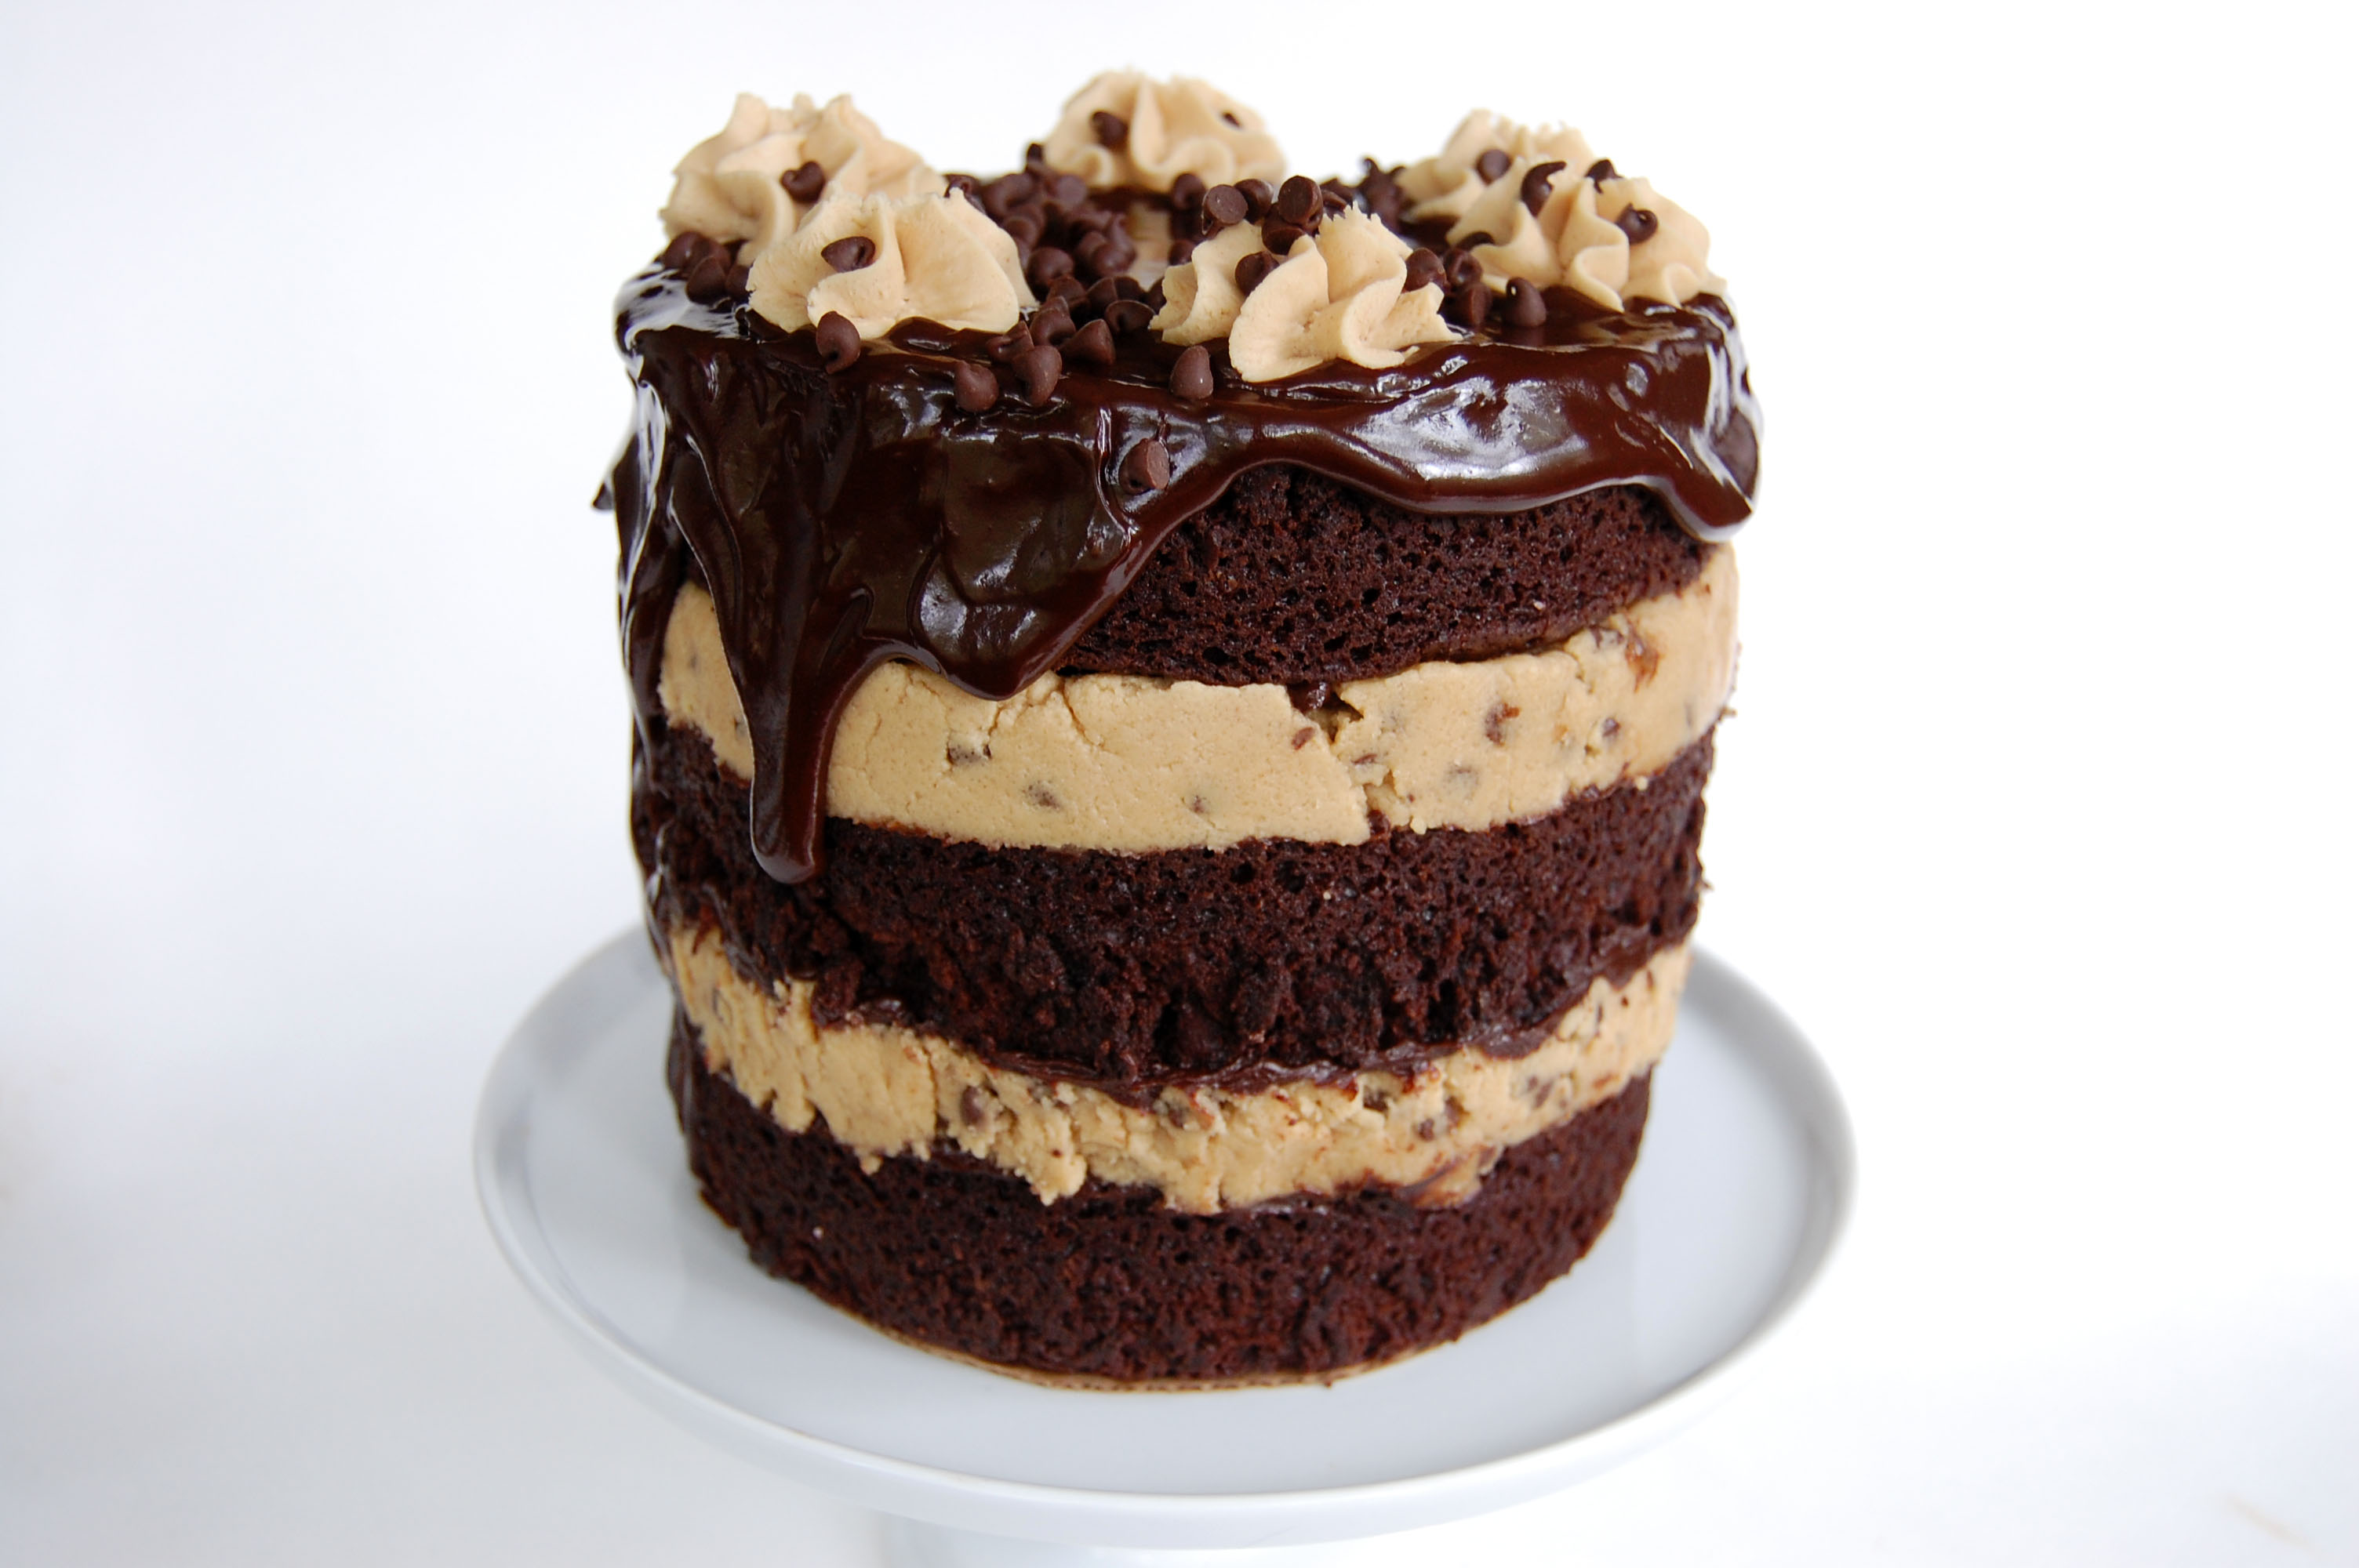 Chocolate Chip Cake Recipe With Cake Mix